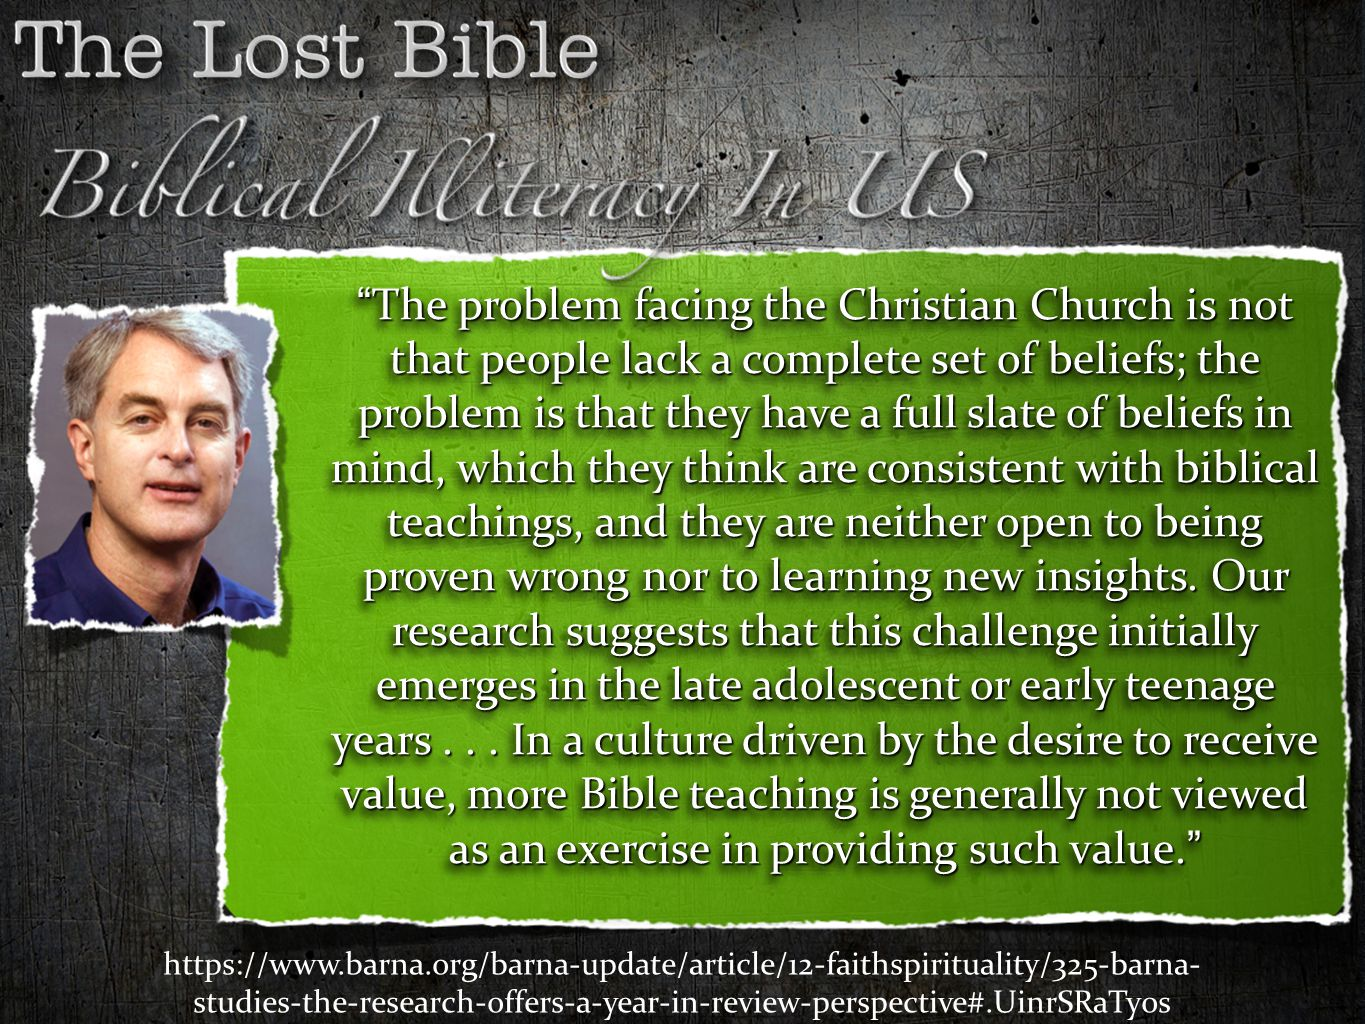 The problem facing the Christian Church is not that people lack a complete set of beliefs; the problem is that they have a full slate of beliefs in mind, which they think are consistent with biblical teachings, and they are neither open to being proven wrong nor to learning new insights. Our research suggests that this challenge initially emerges in the late adolescent or early teenage years . . . In a culture driven by the desire to receive value, more Bible teaching is generally not viewed as an exercise in providing such value.